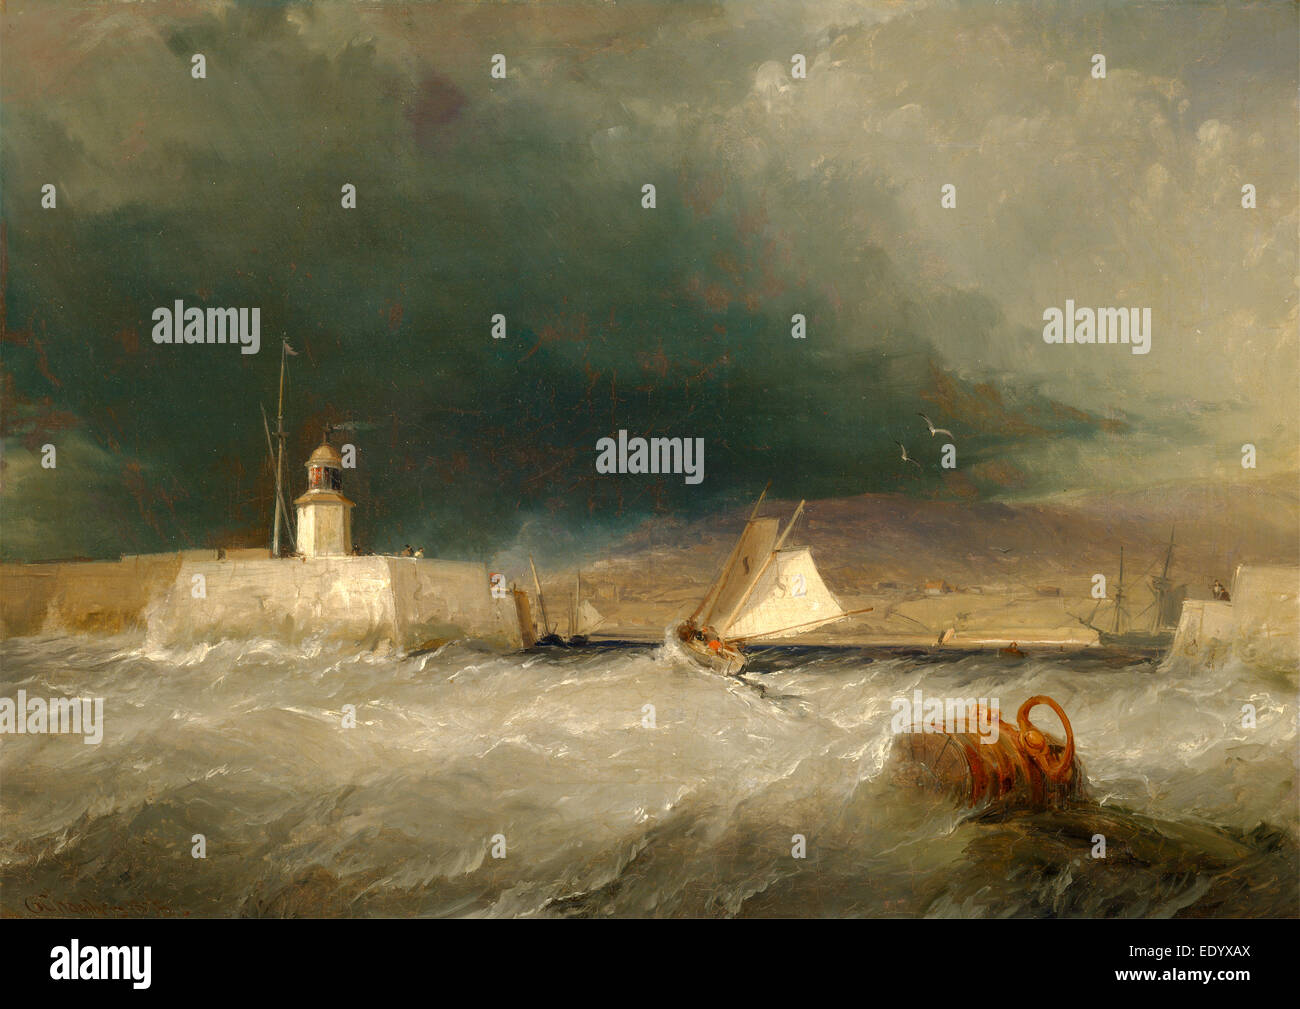 Port on a Stormy Day Signed and dated, lower left: 'G. Chambers 1835', George Chambers, 1803-1840, British - Stock Image